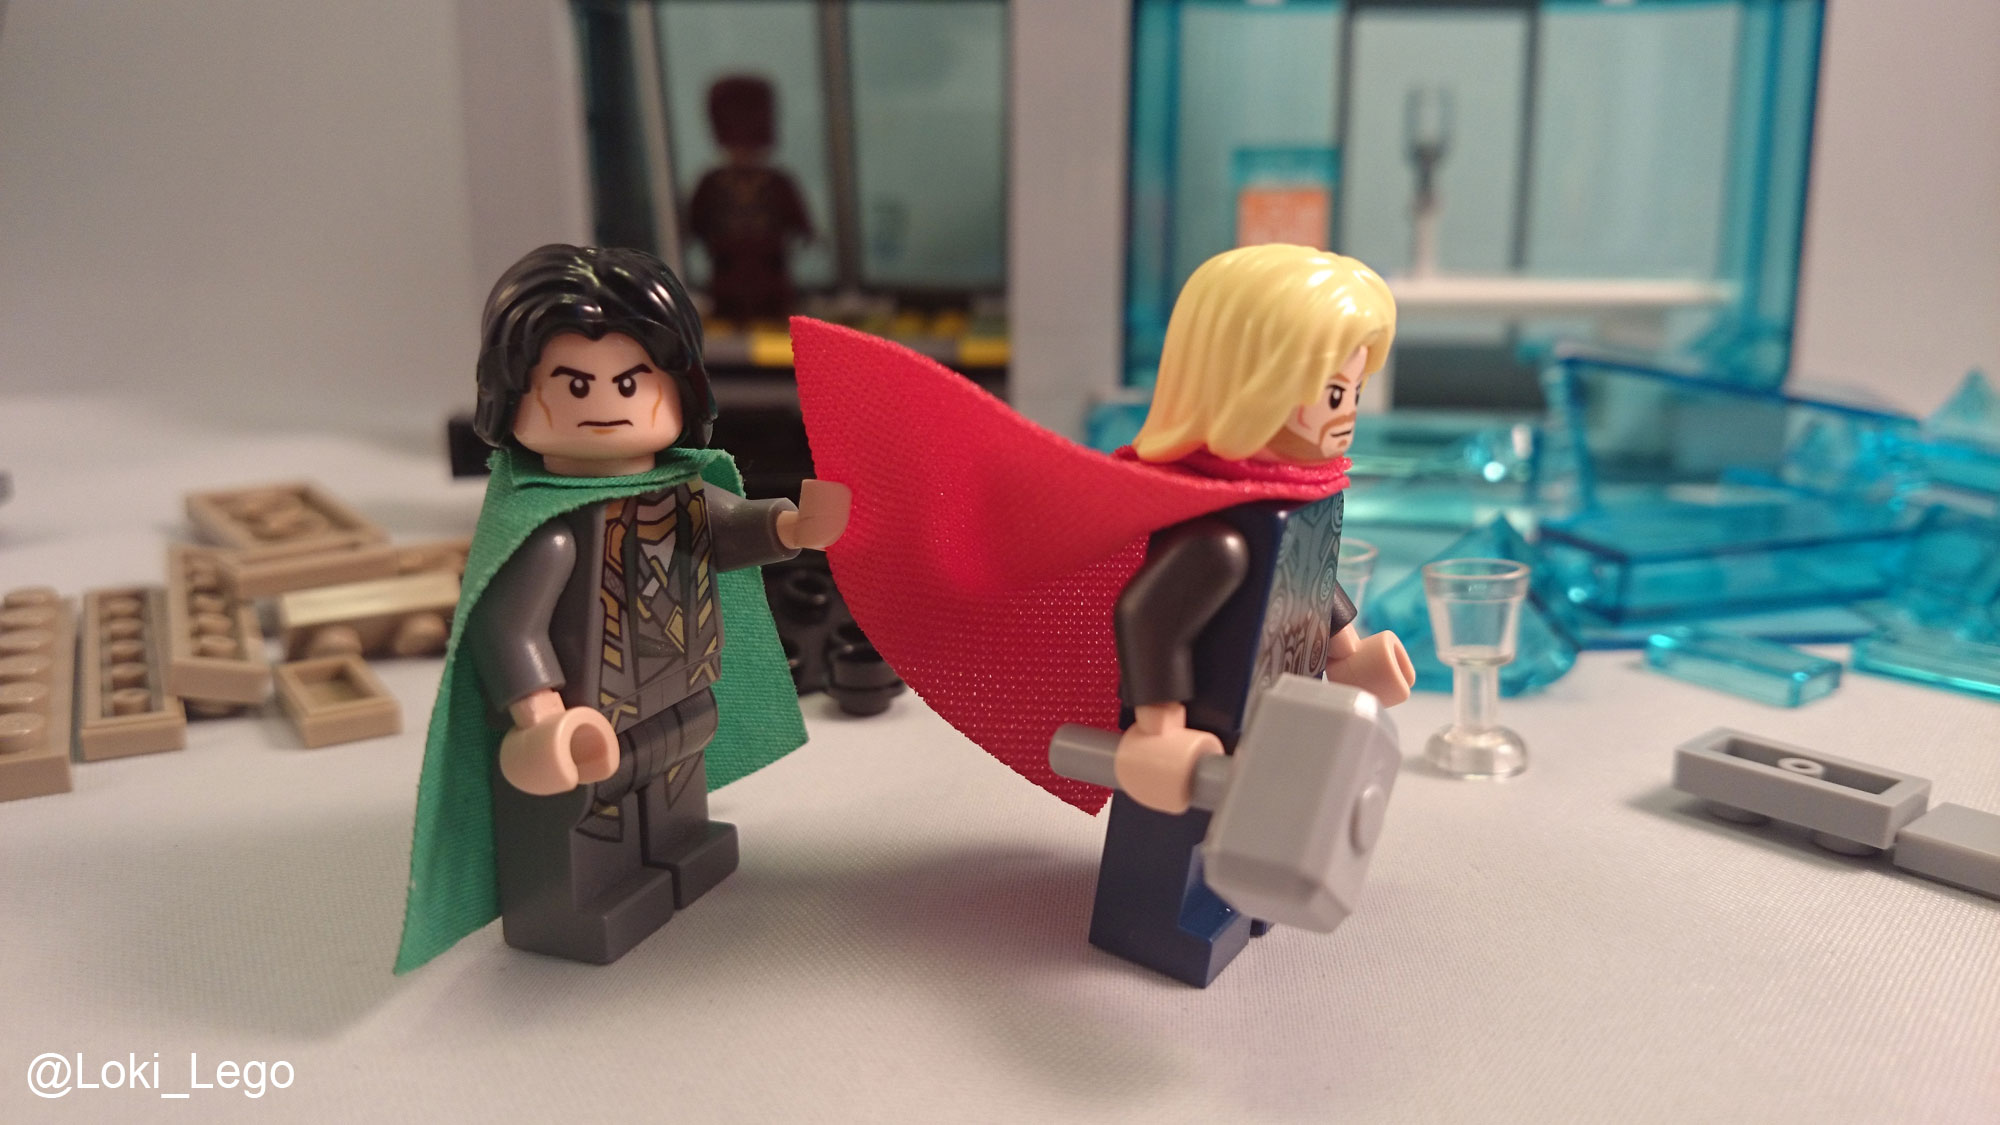 old-vs-new-lego-capes